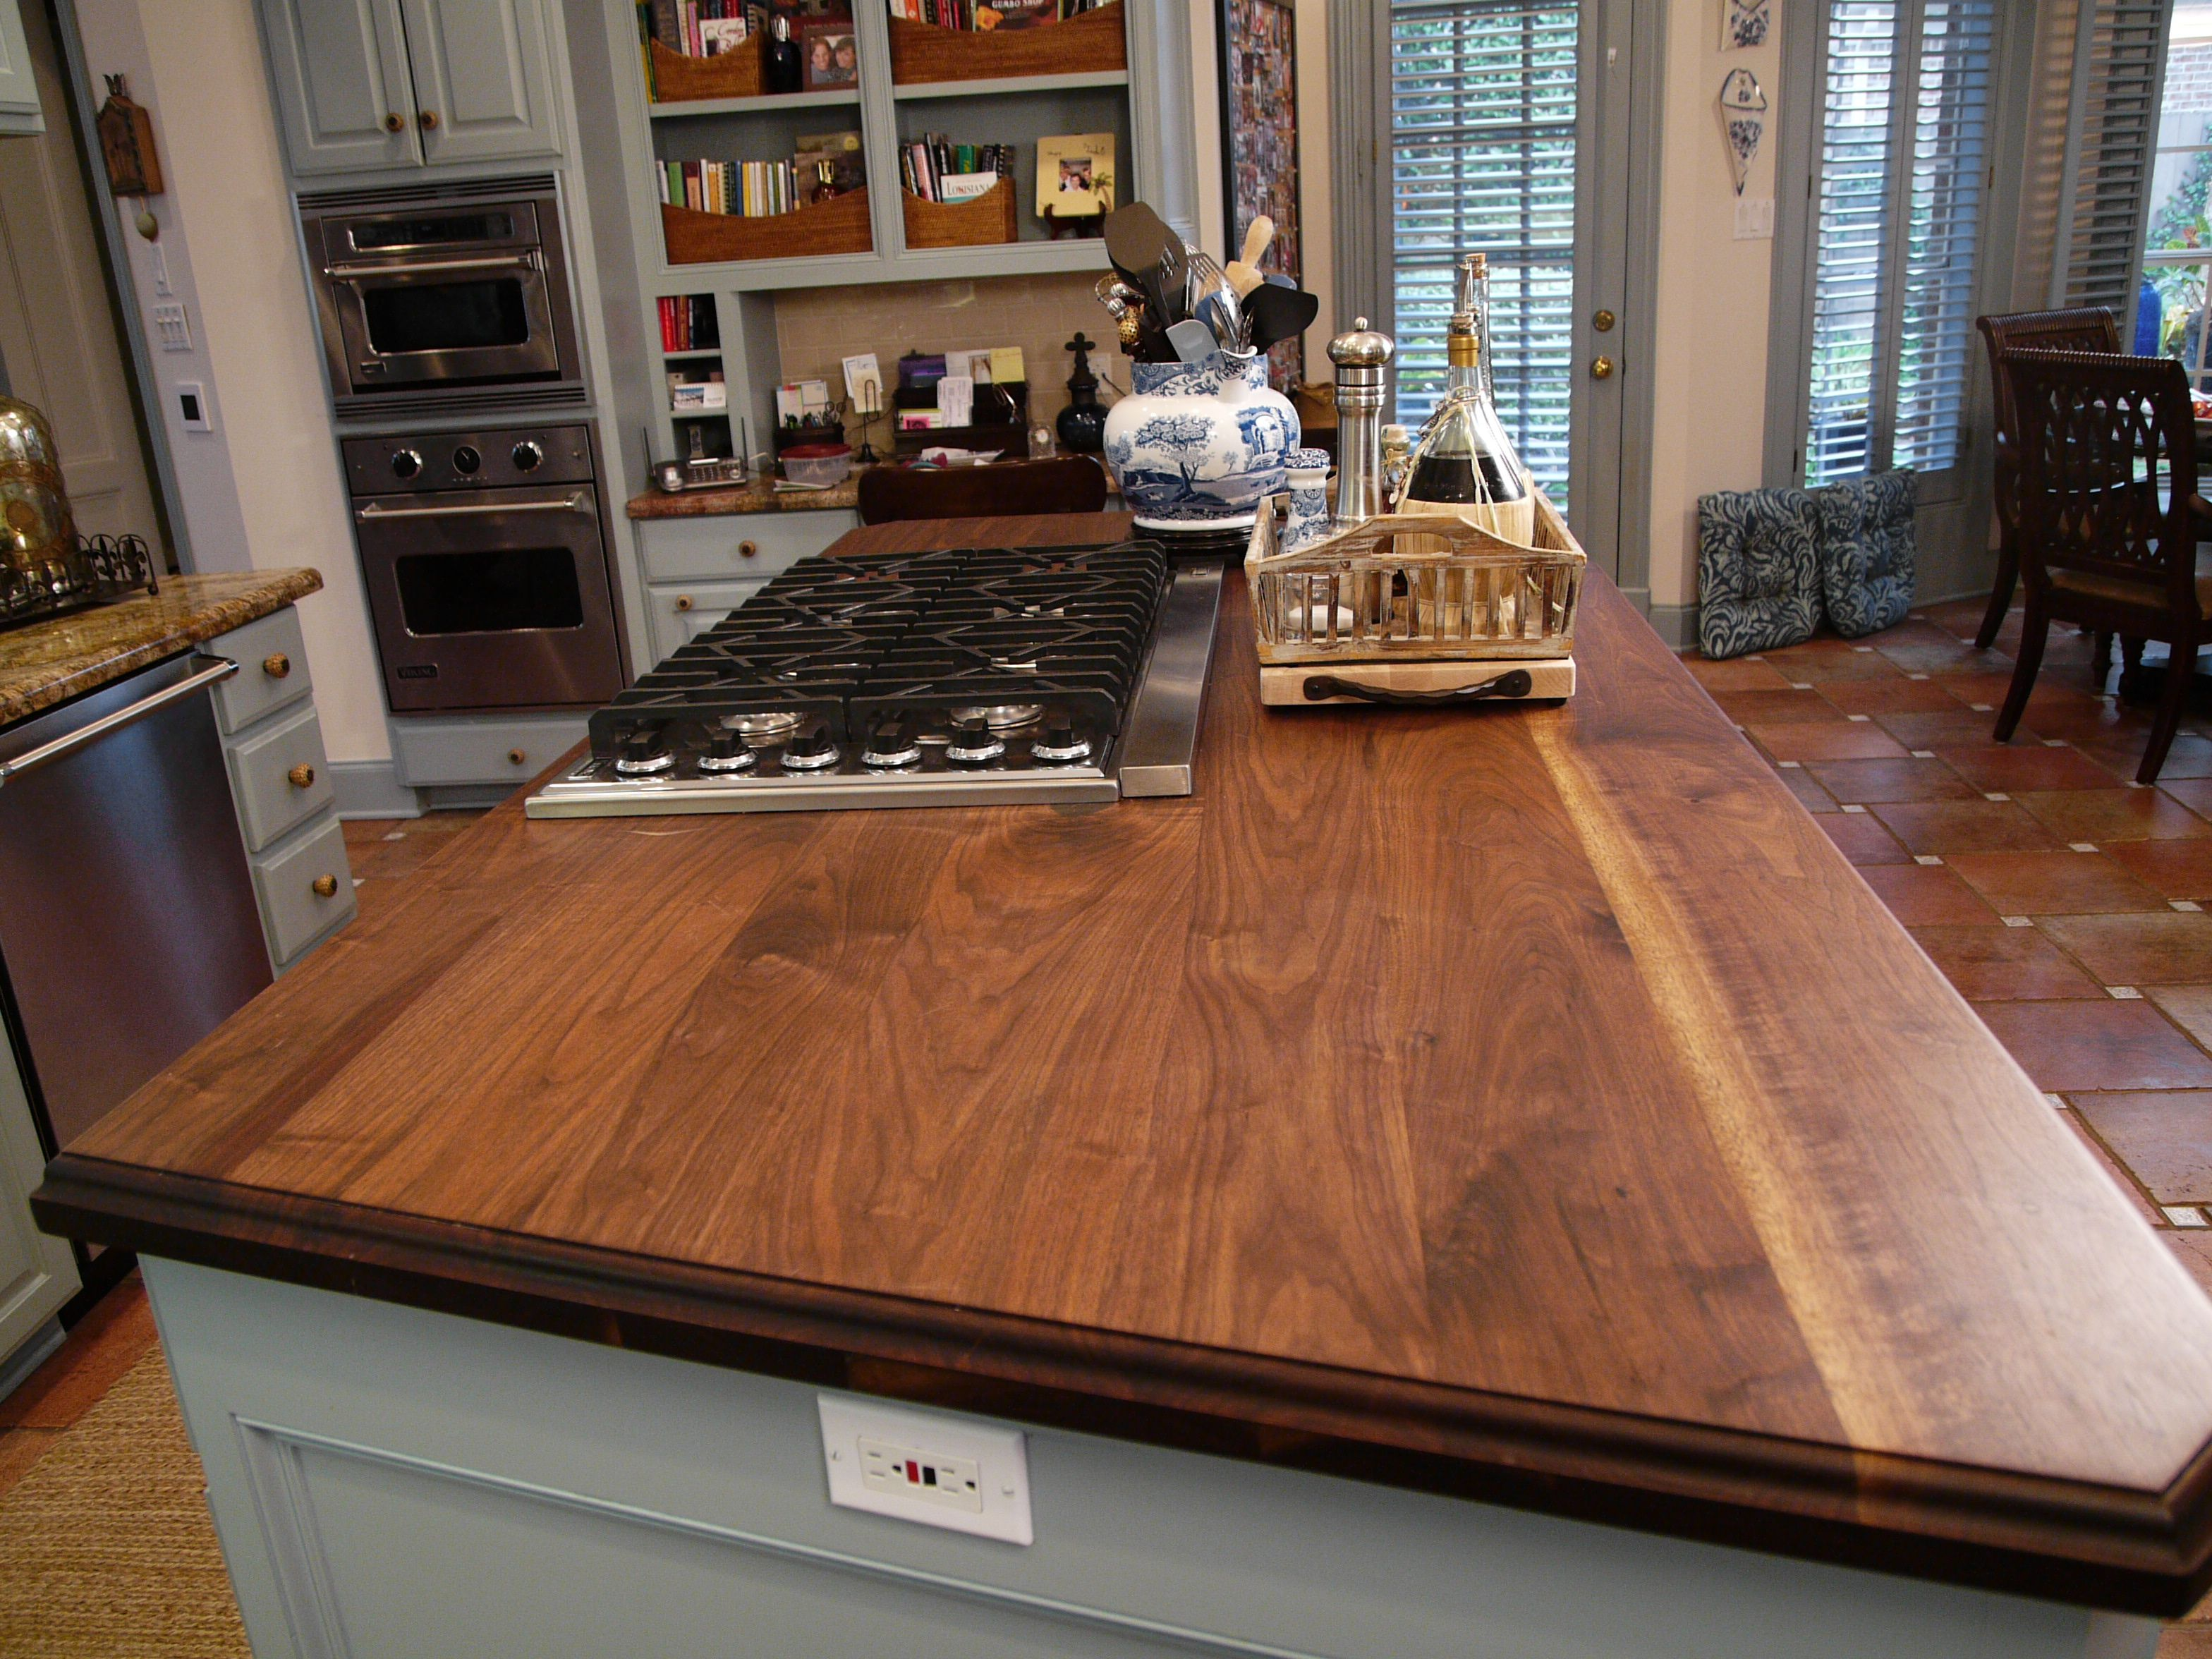 Butcherblock Solid Walnut Face Grain Wood Countertop, Made By Texas Treads  In Houston. 832